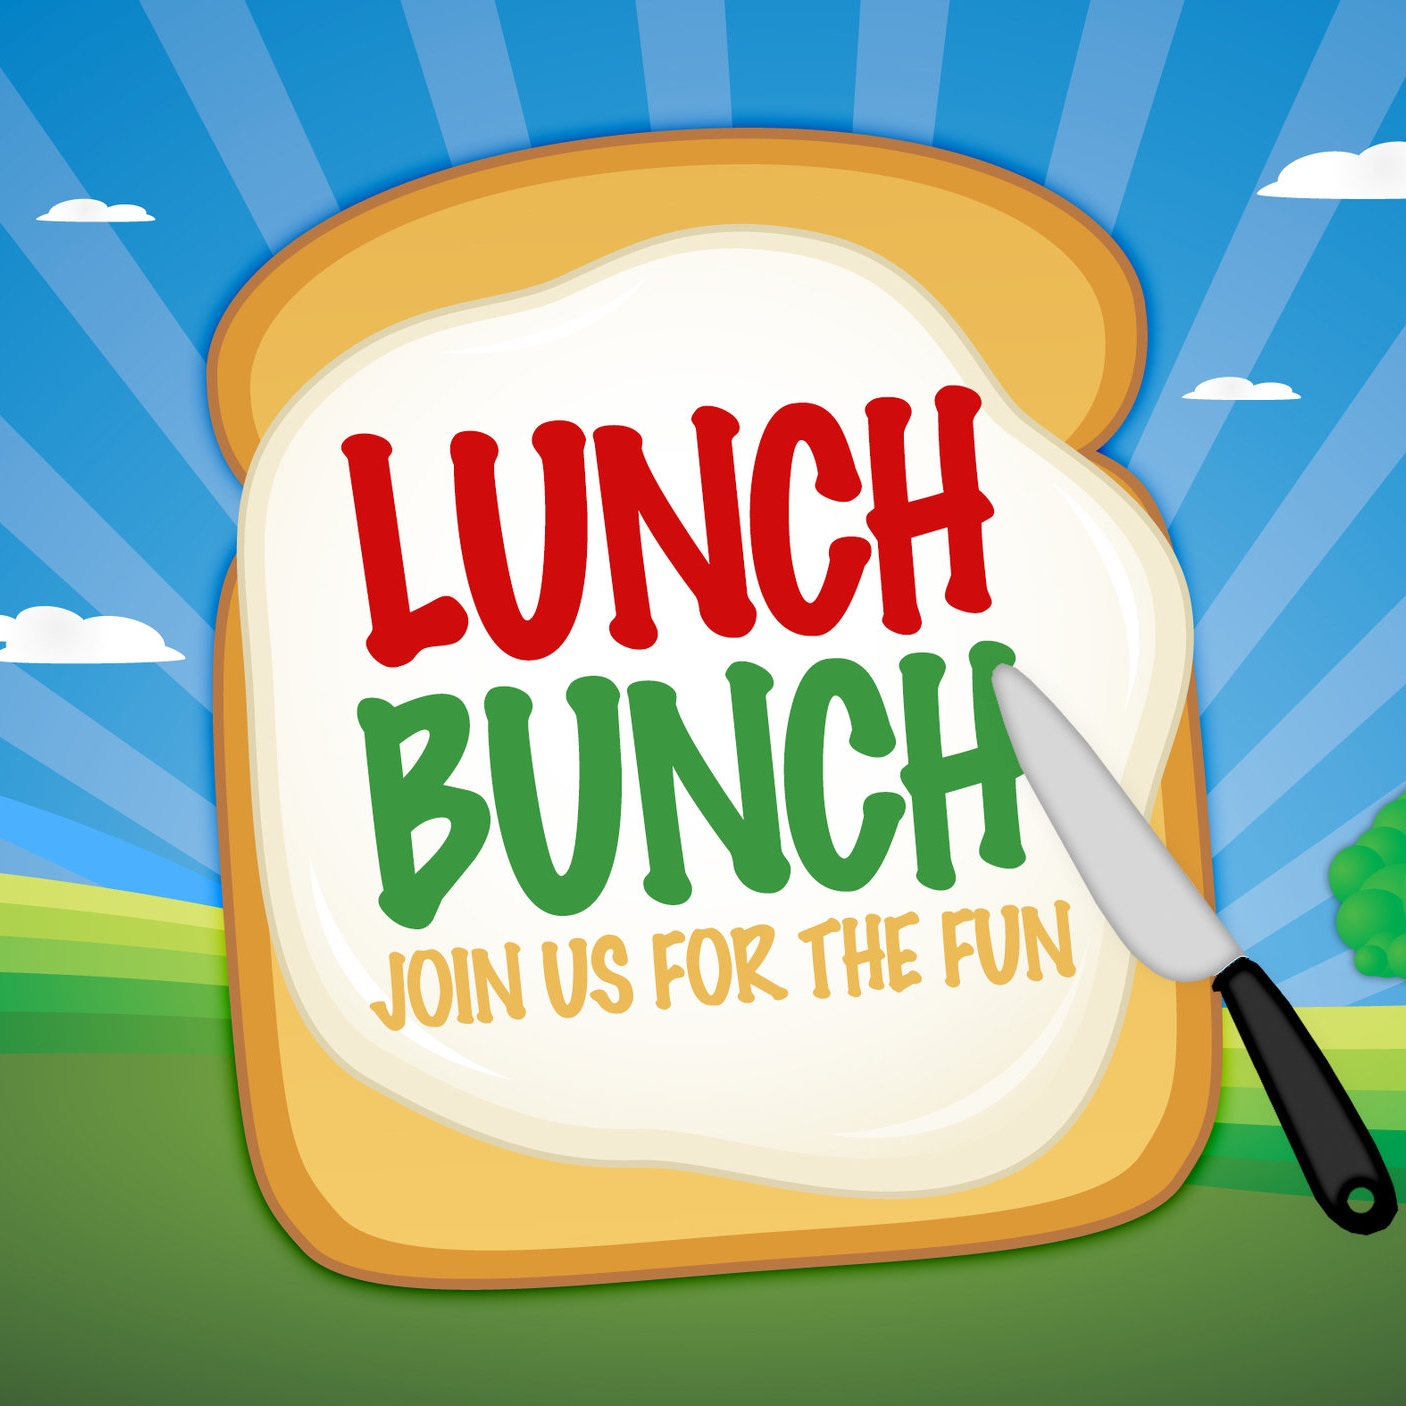 Lunch clipart lunch bunch. Cave spring umc